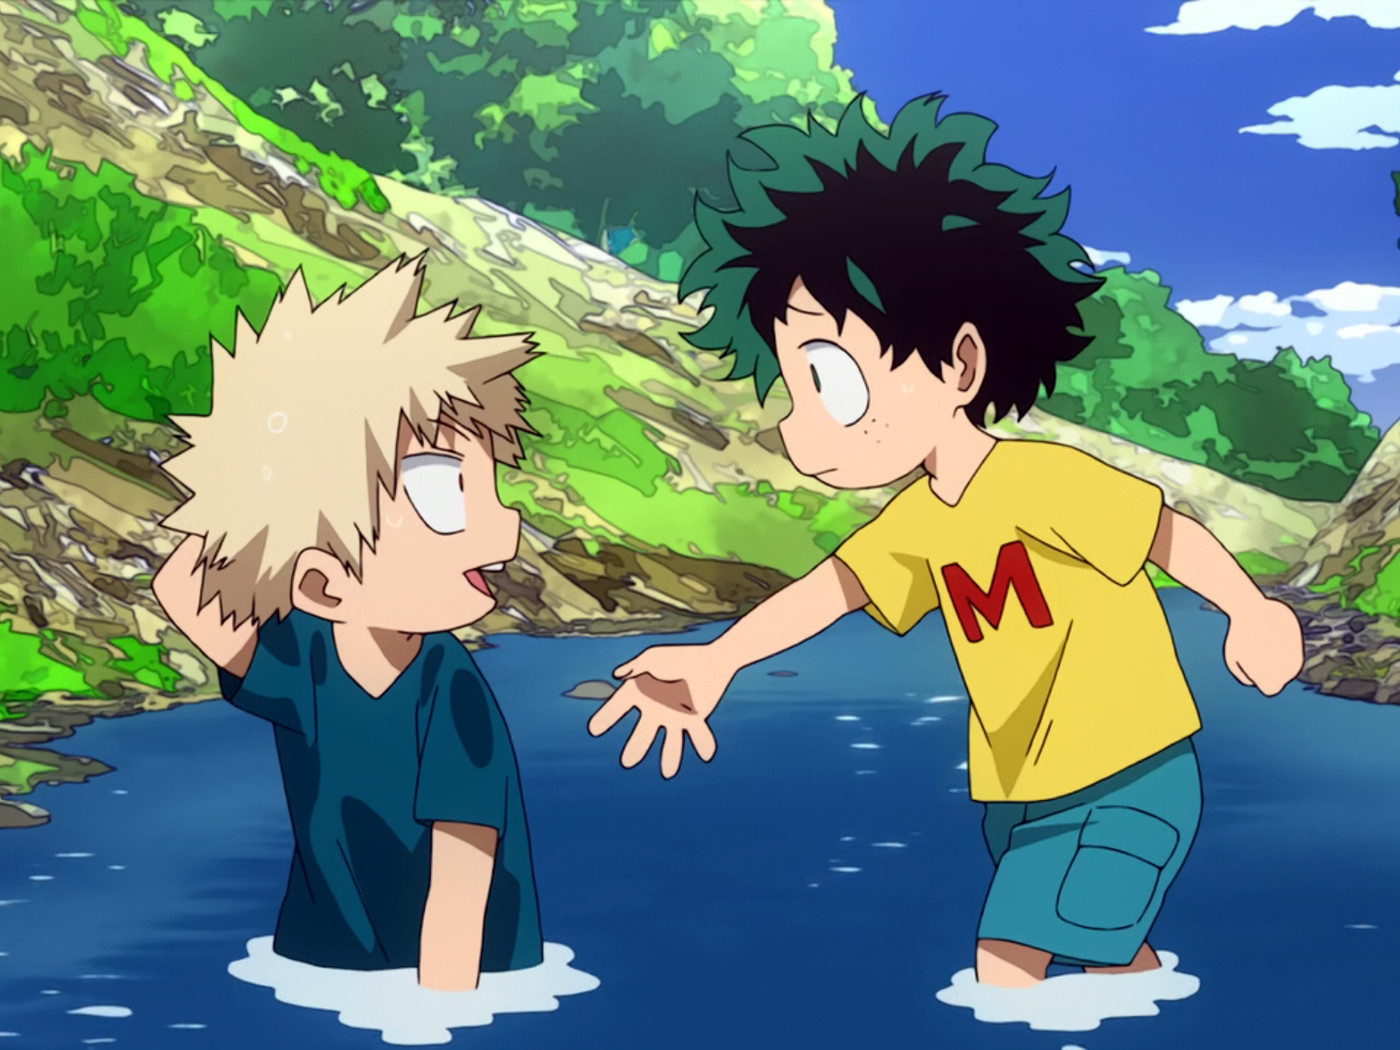 My Hero Academia season 3: Izuku & Gang Orca clash sparks big